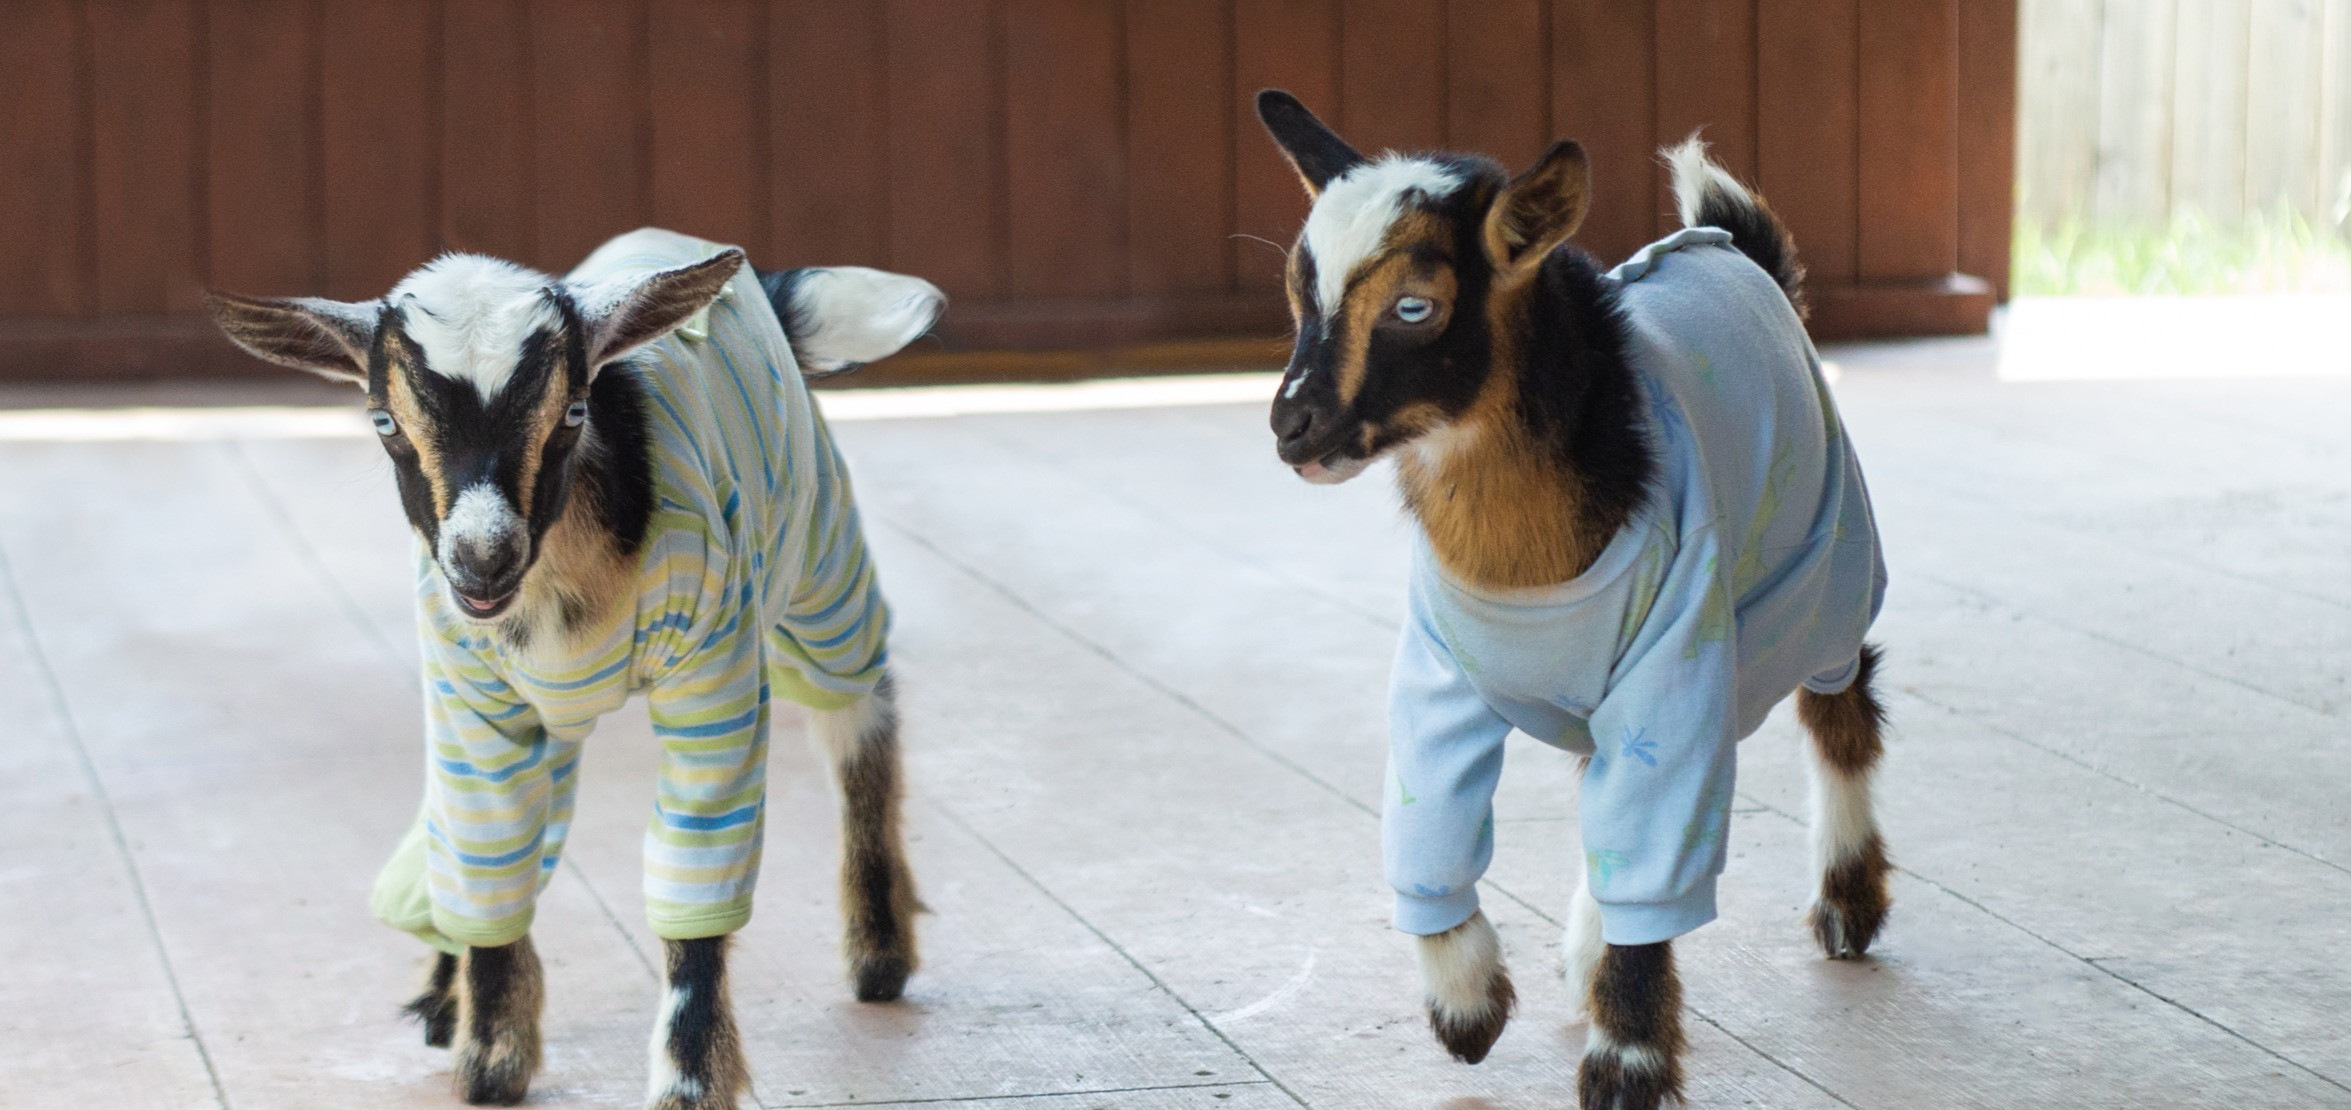 Overnight with Goats